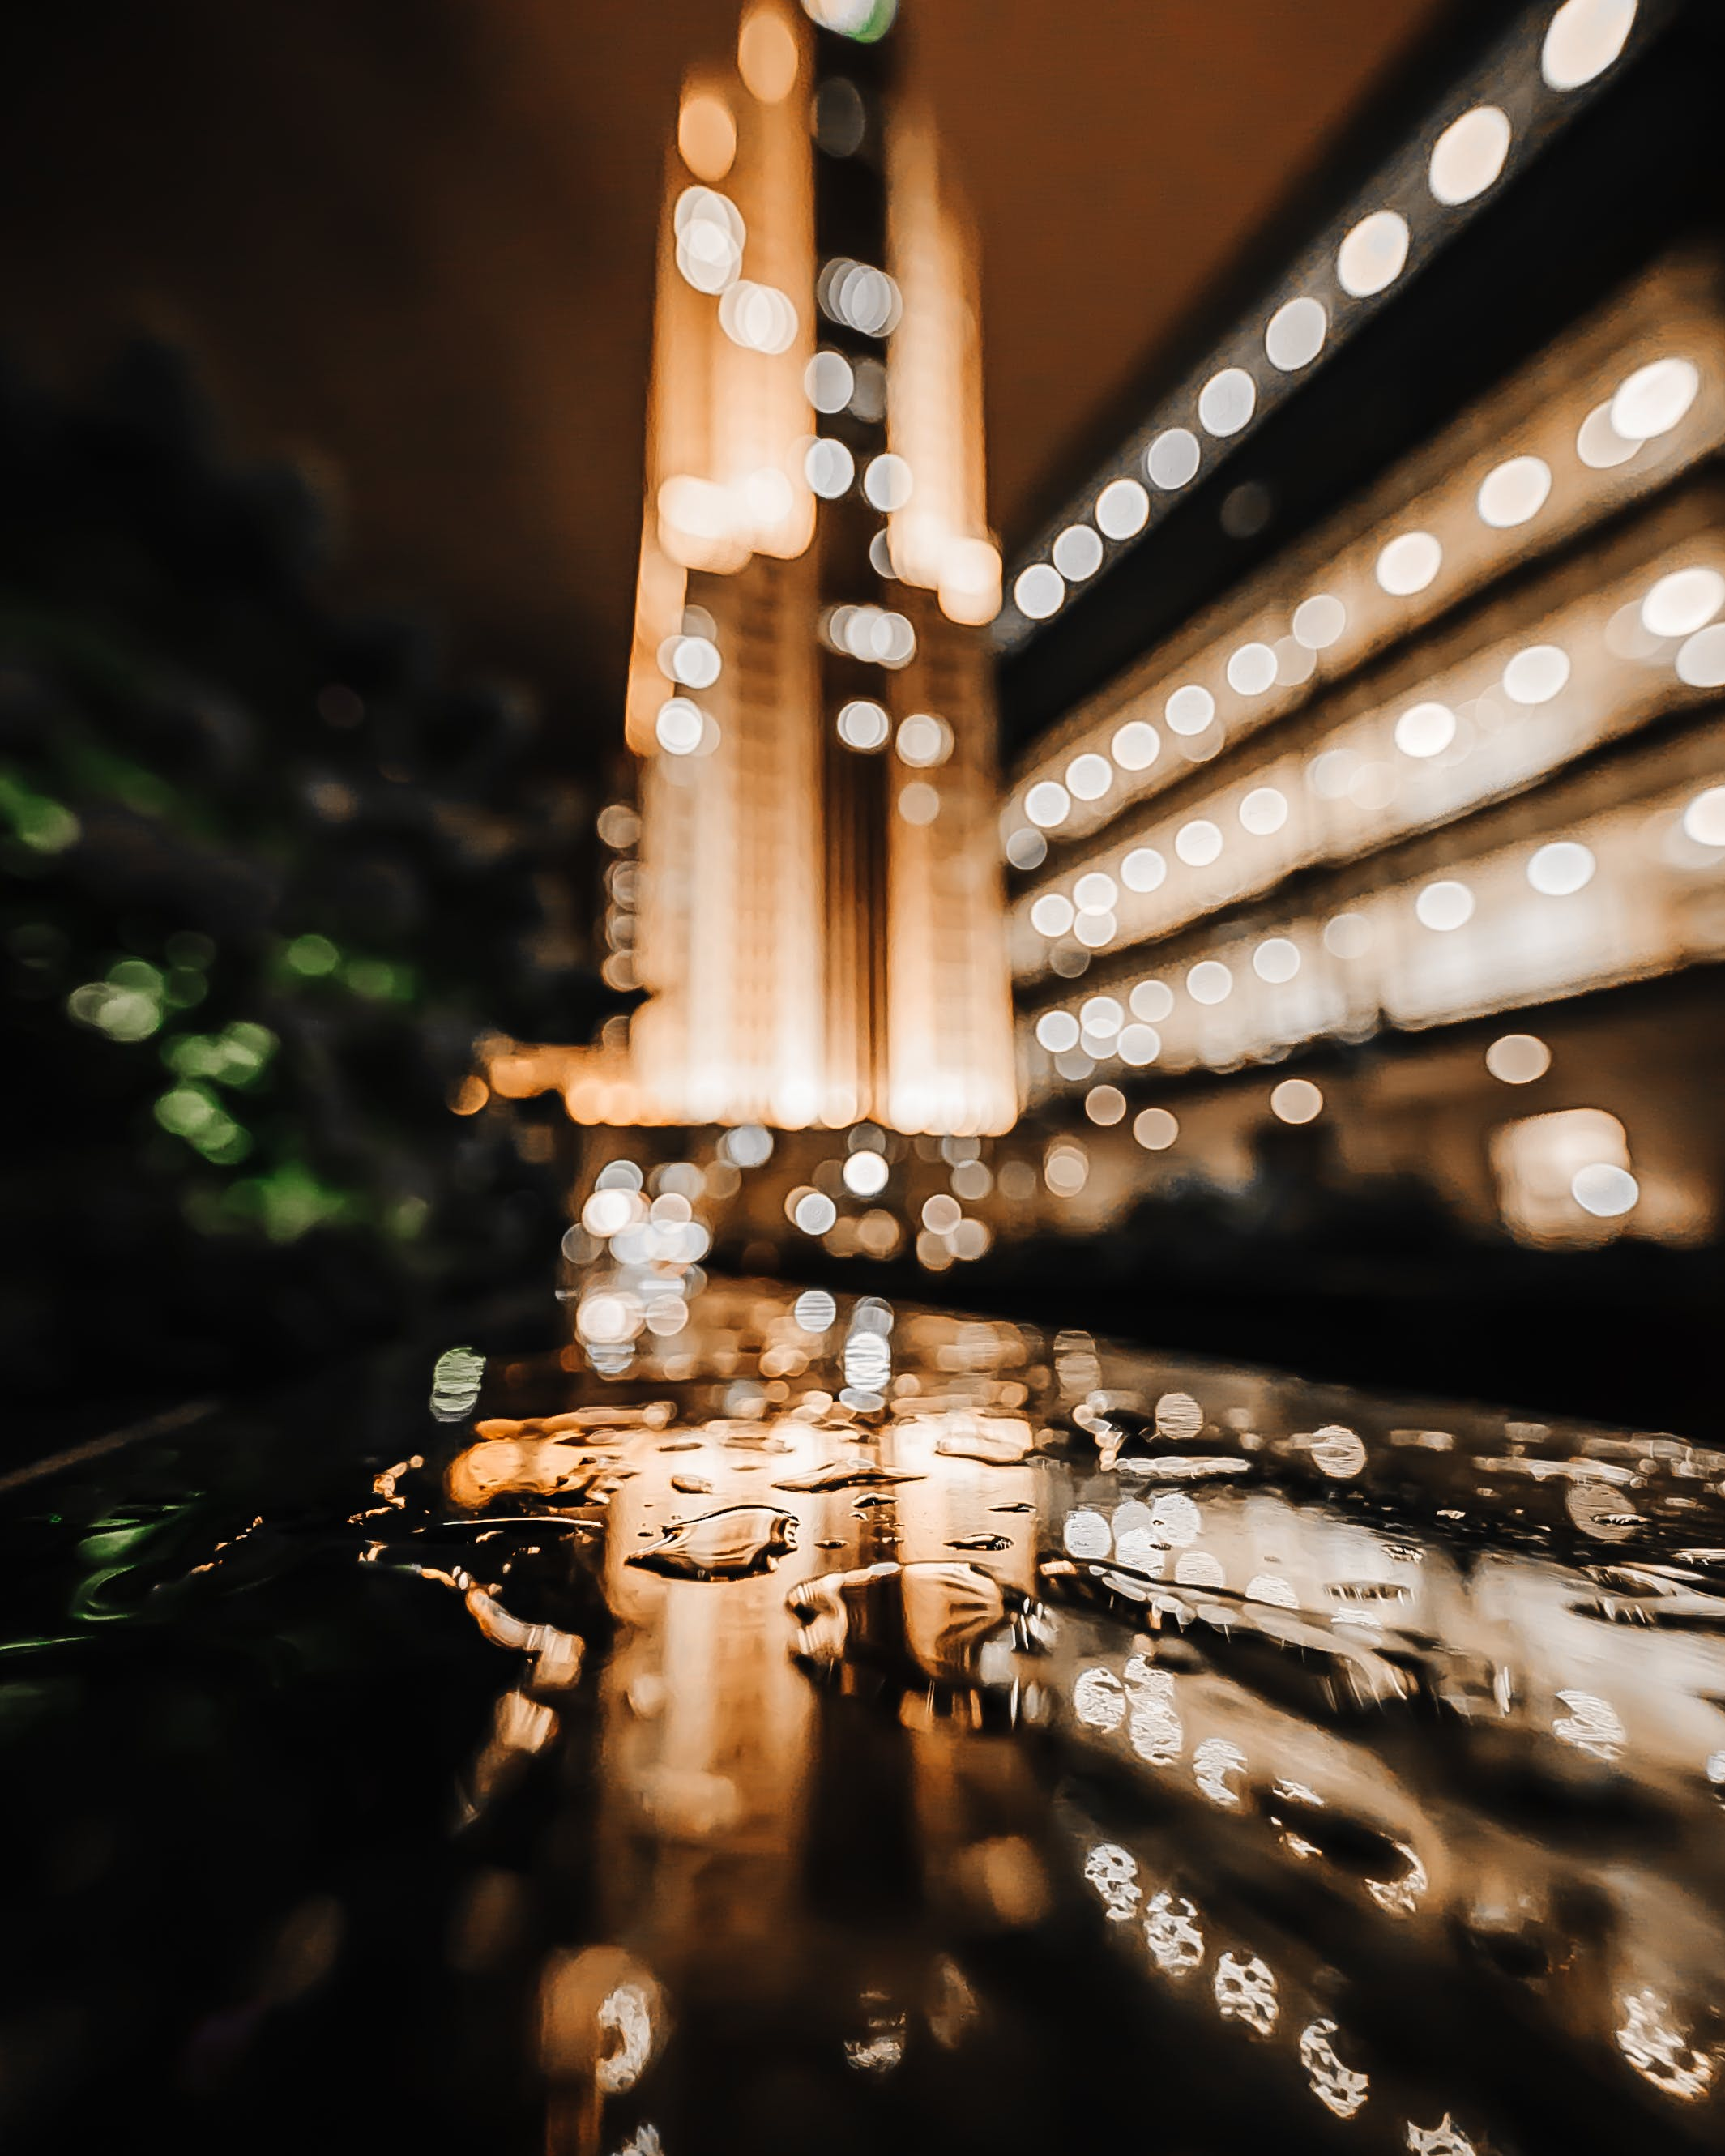 Bokeh Photography of Building